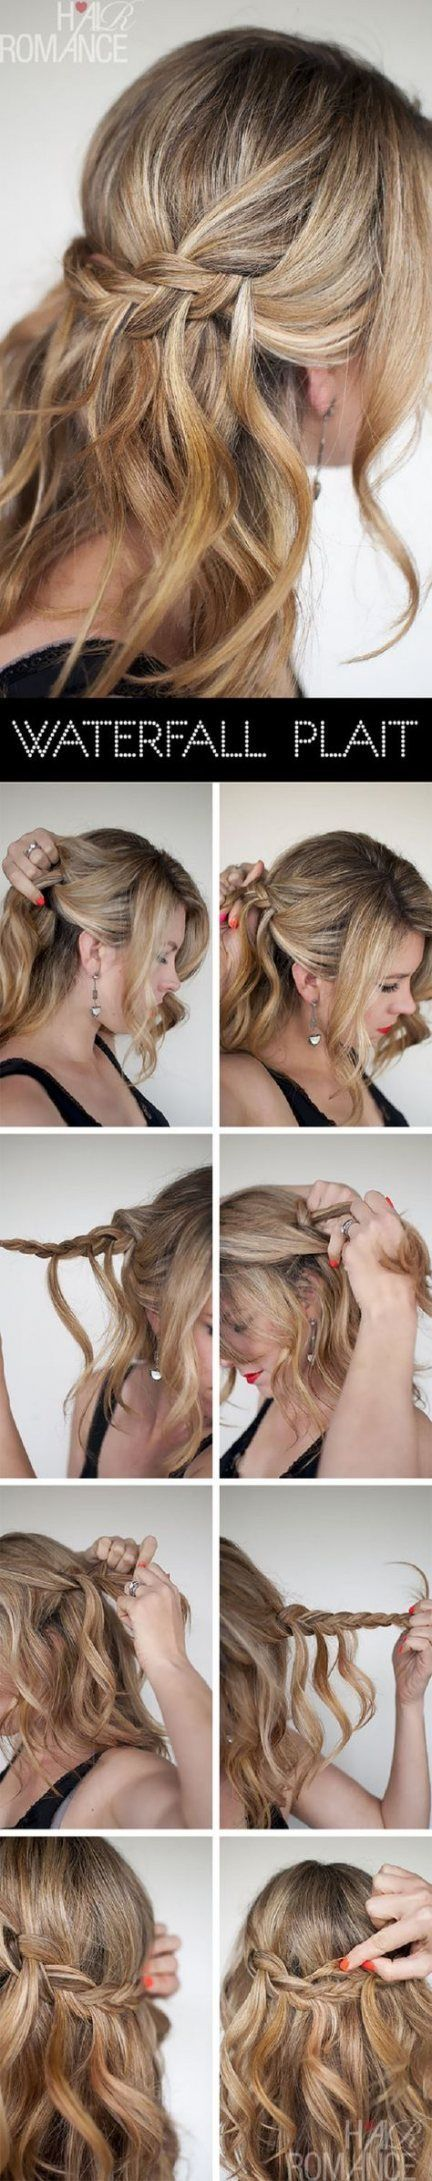 44+ ideas for wedding hairstyles straight long french braids